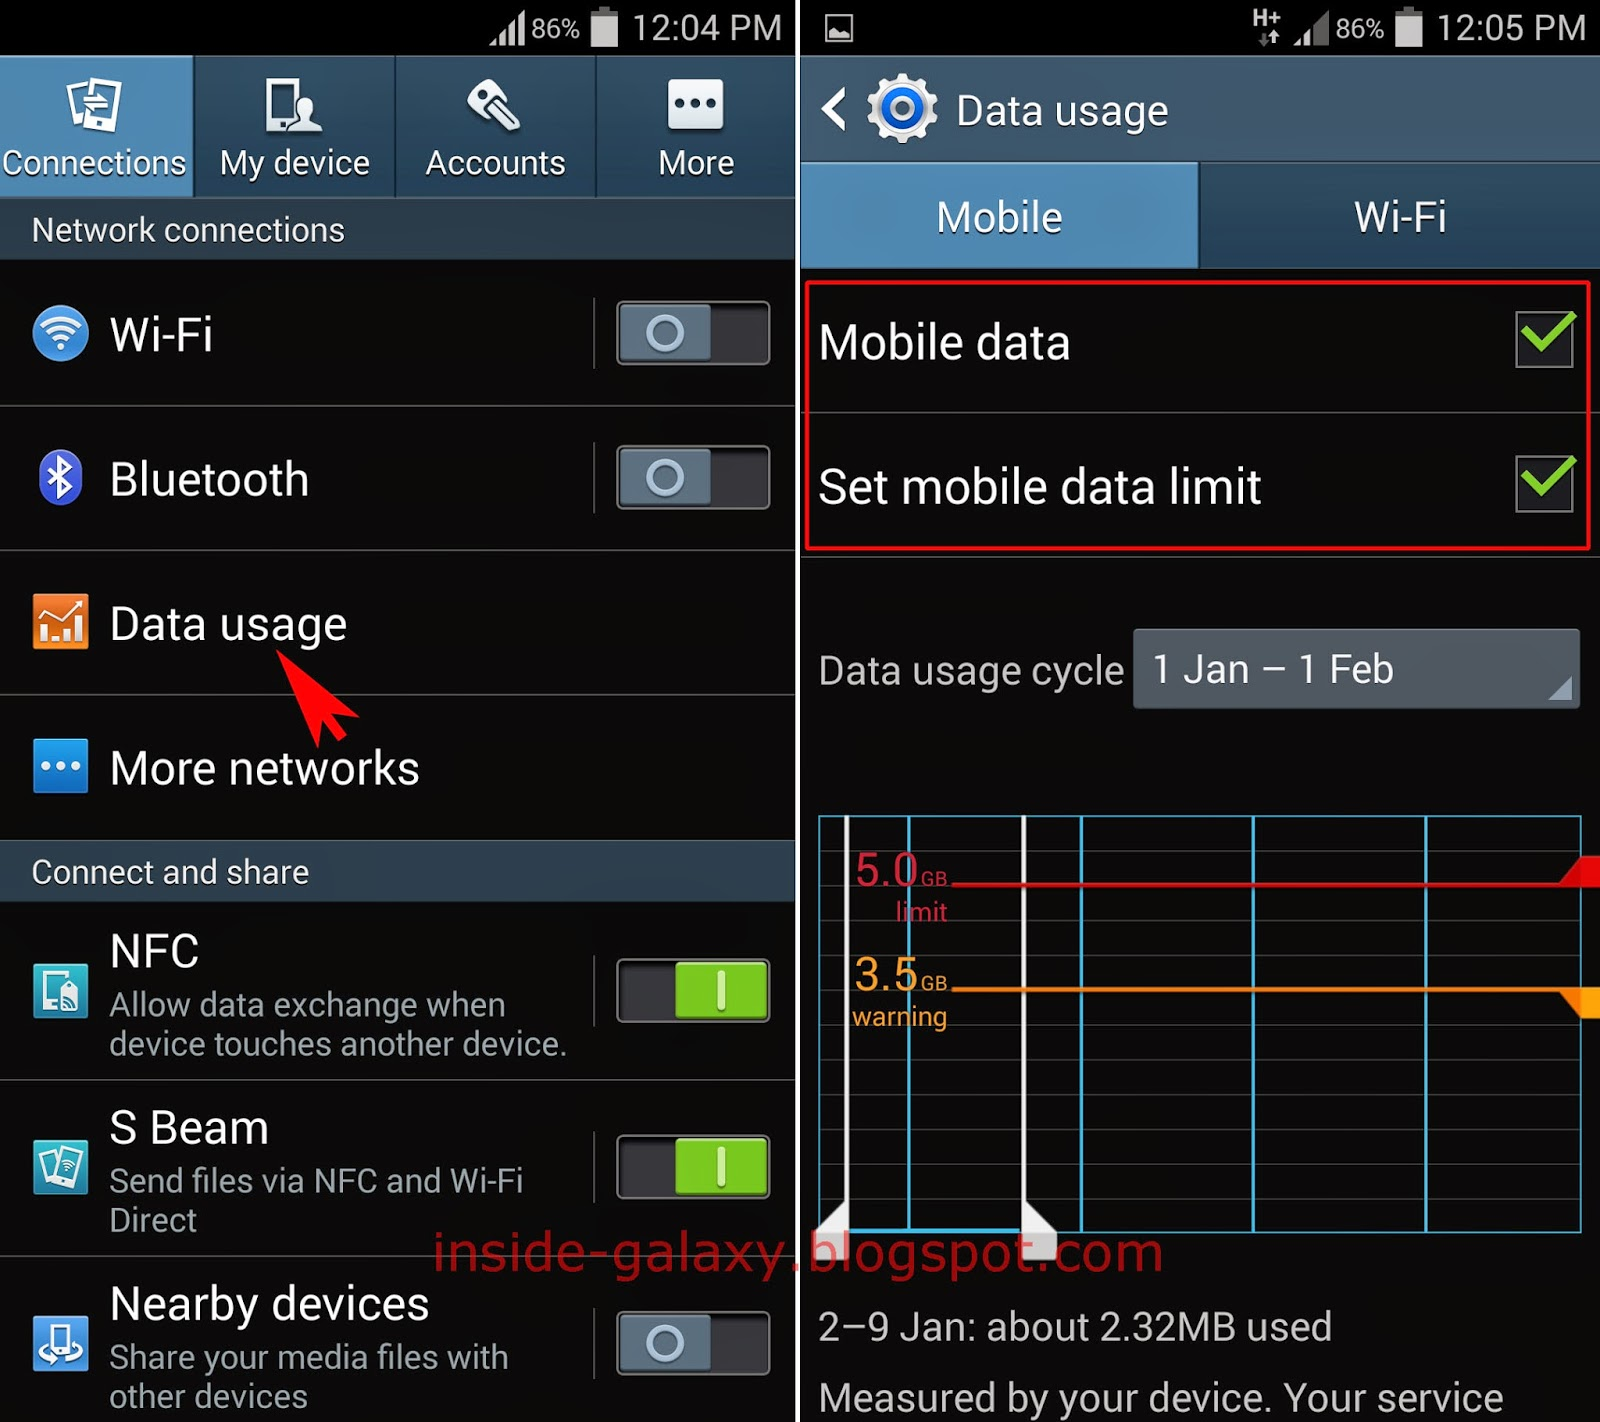 Samsung Galaxy S4: How to Set Mobile Data Limit in Android